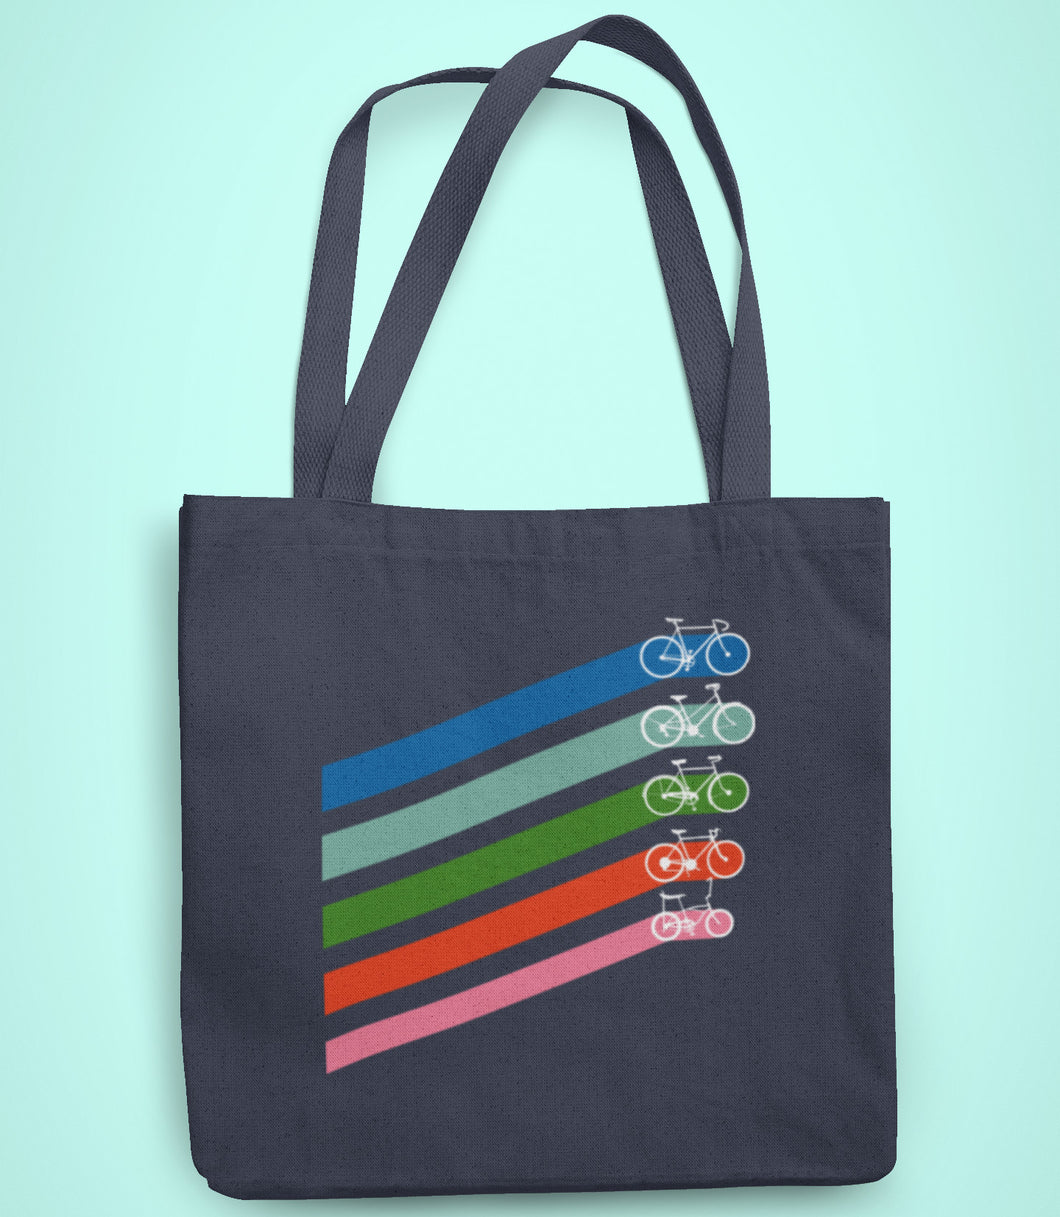 Five retro coloured diagonal stripes leading to different styles of bikes on a recycled cotton and polyester tote bag